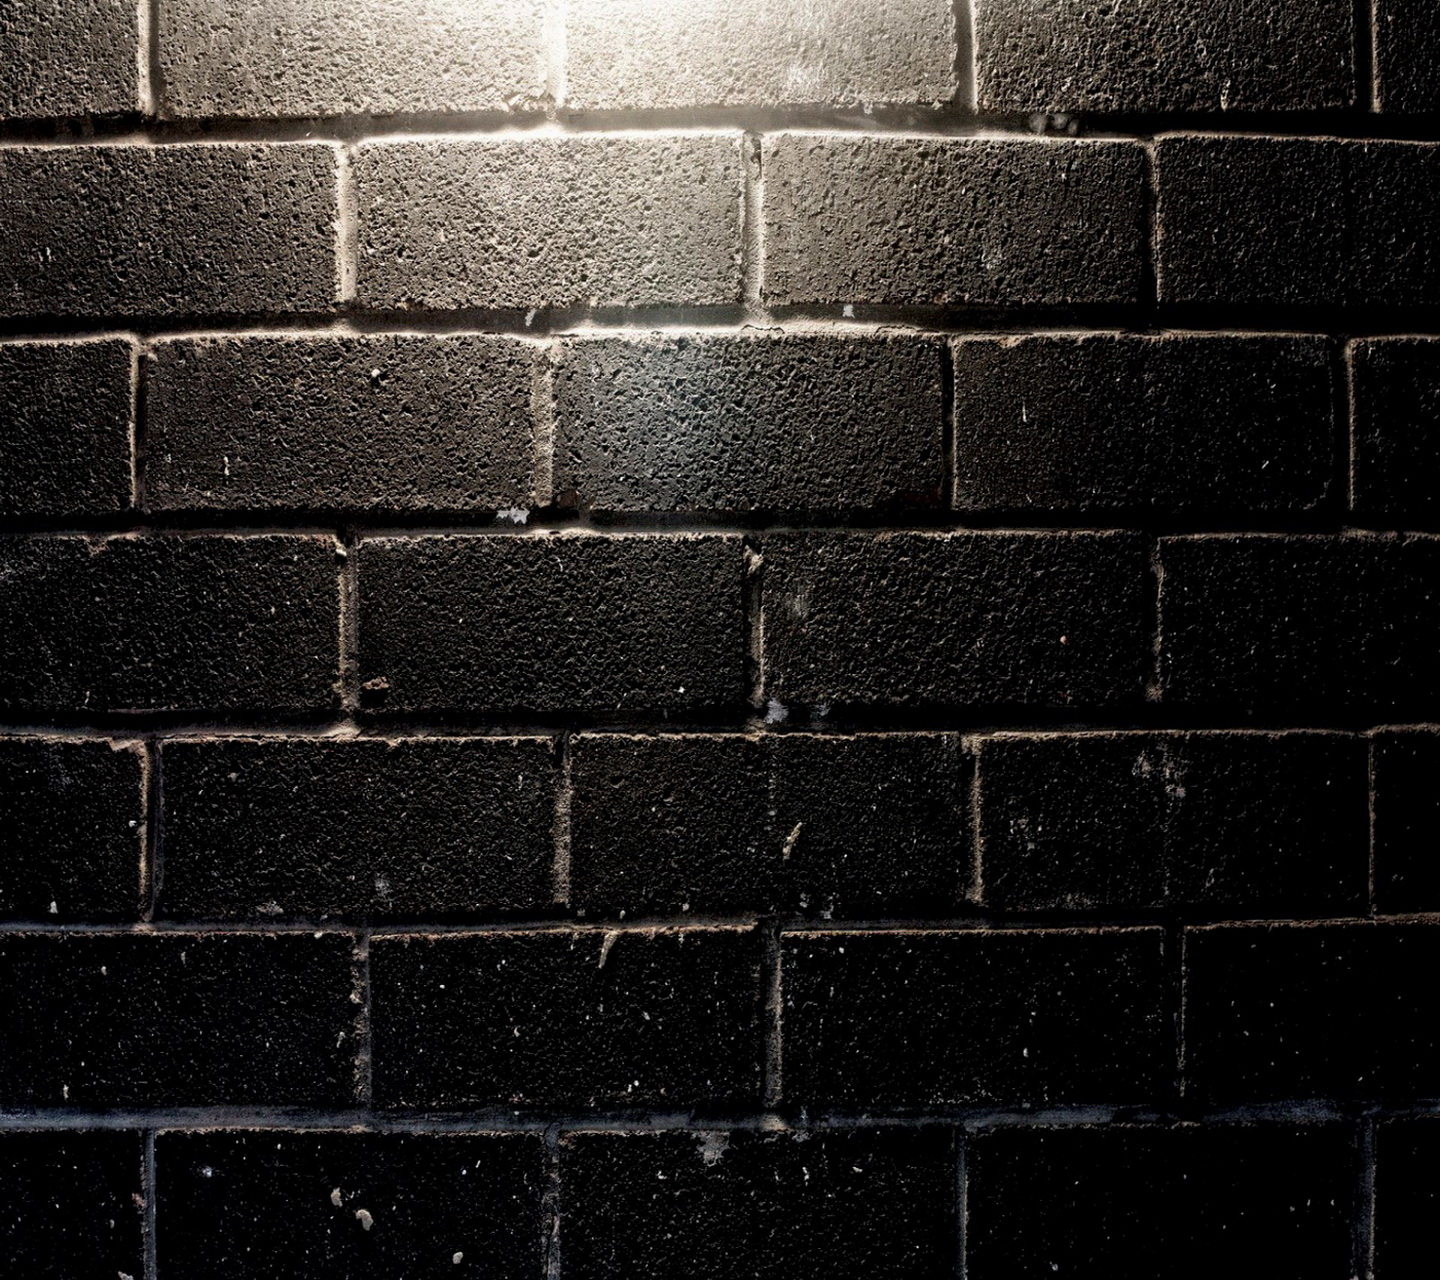 Black Brick Wall Living In Shadows Rivers Of Grue